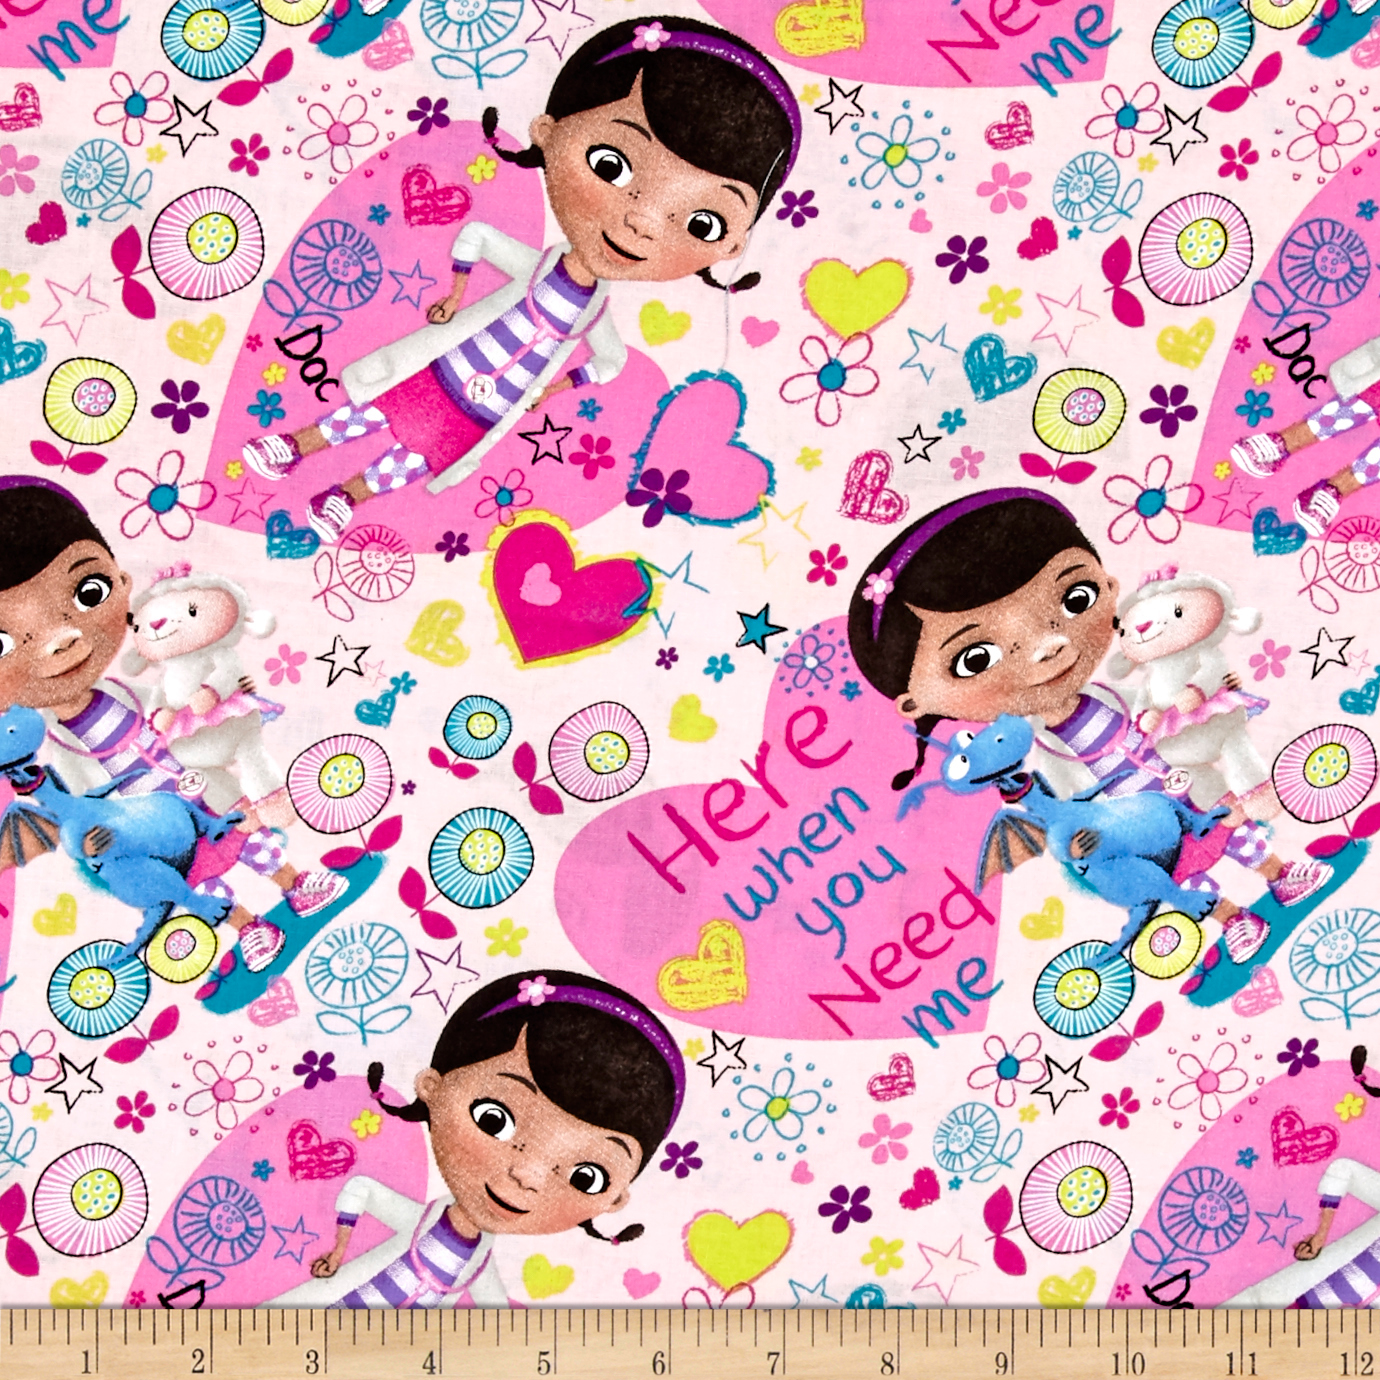 Disney Doc McStuffins Here When You Need Me Pink Fabric by E. E. Schenck in USA